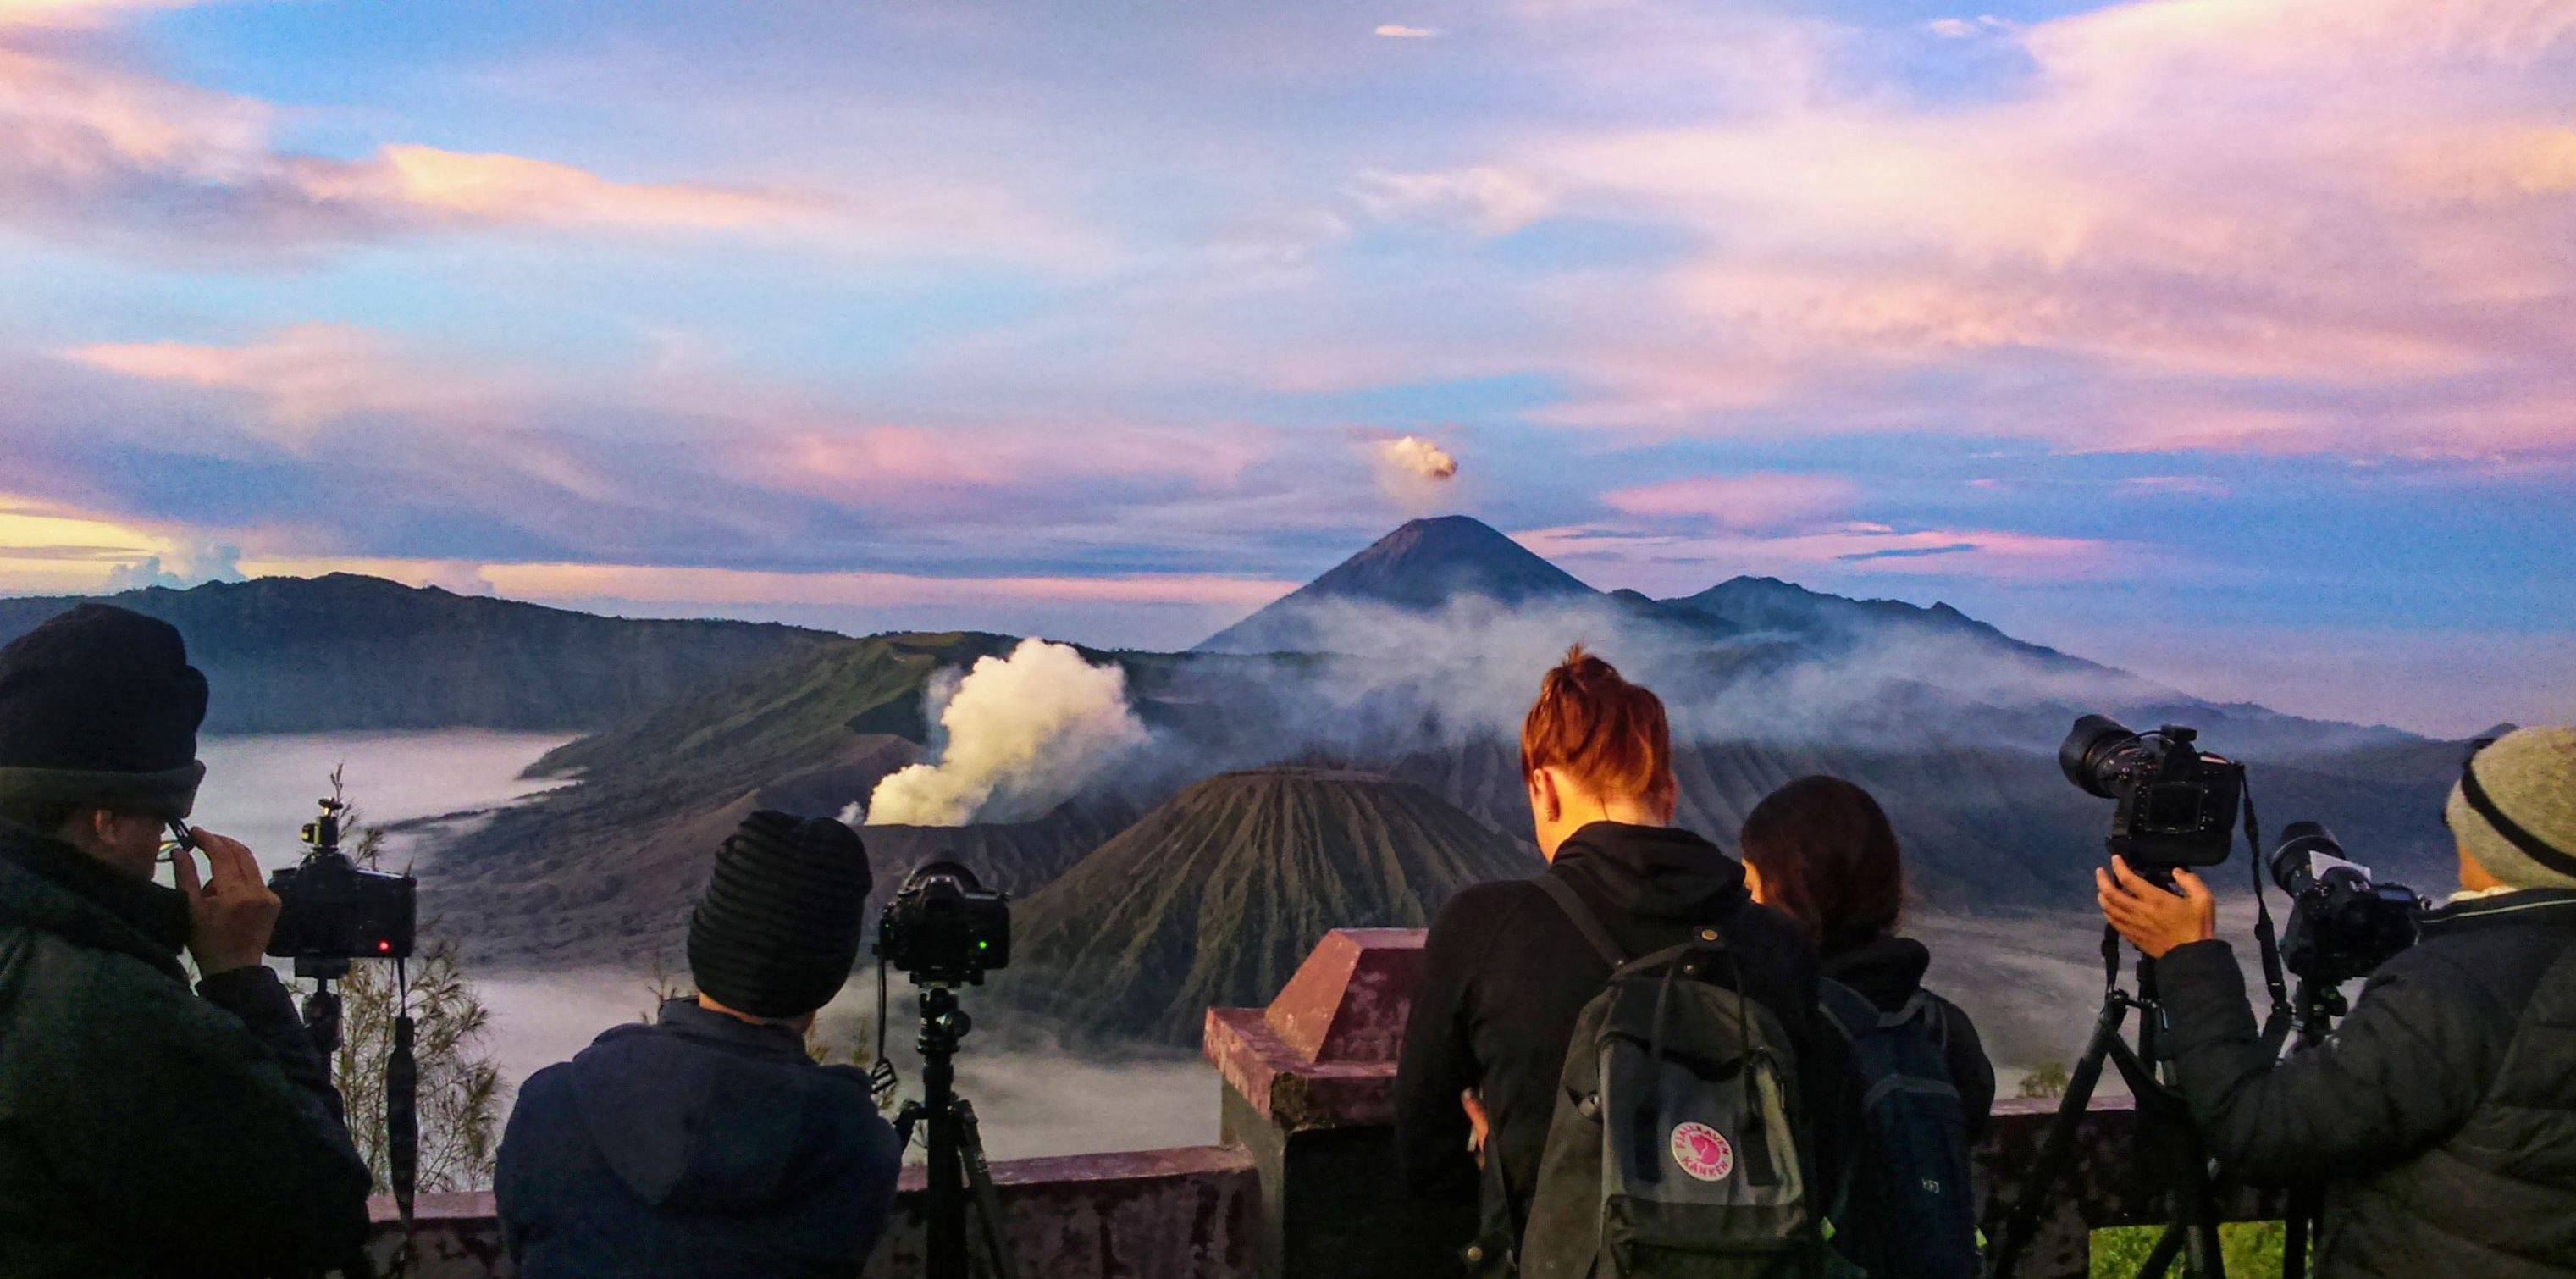 bromo sunrise tour, sunrise tour bromo, bromo tours, bromo sunrise tours